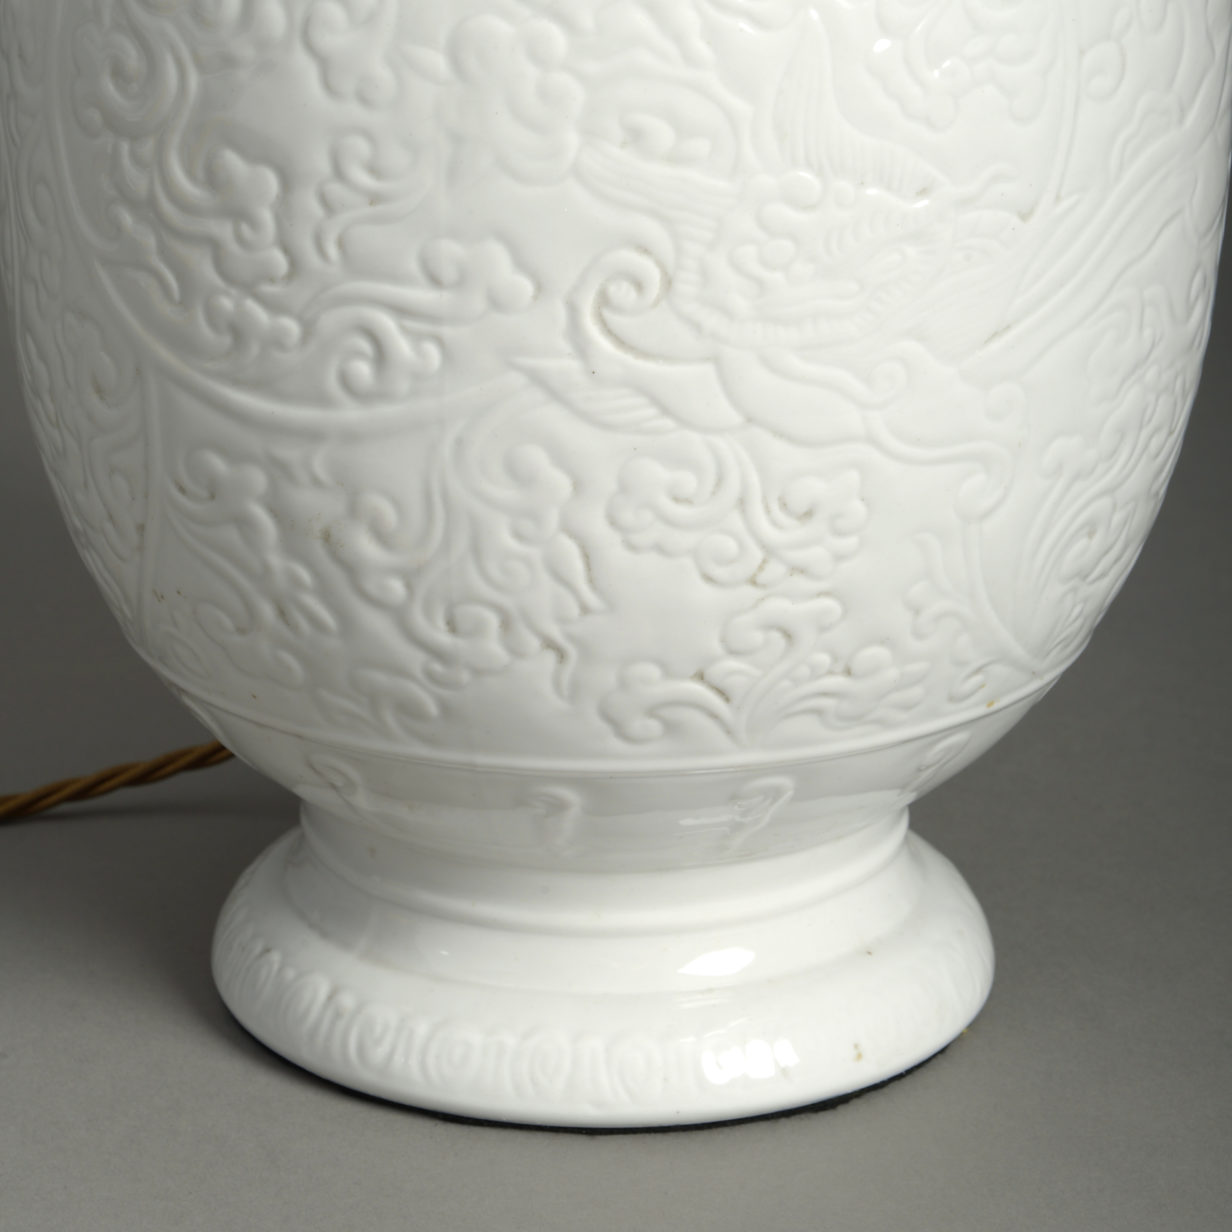 Small White Porcelain Vase Lamp